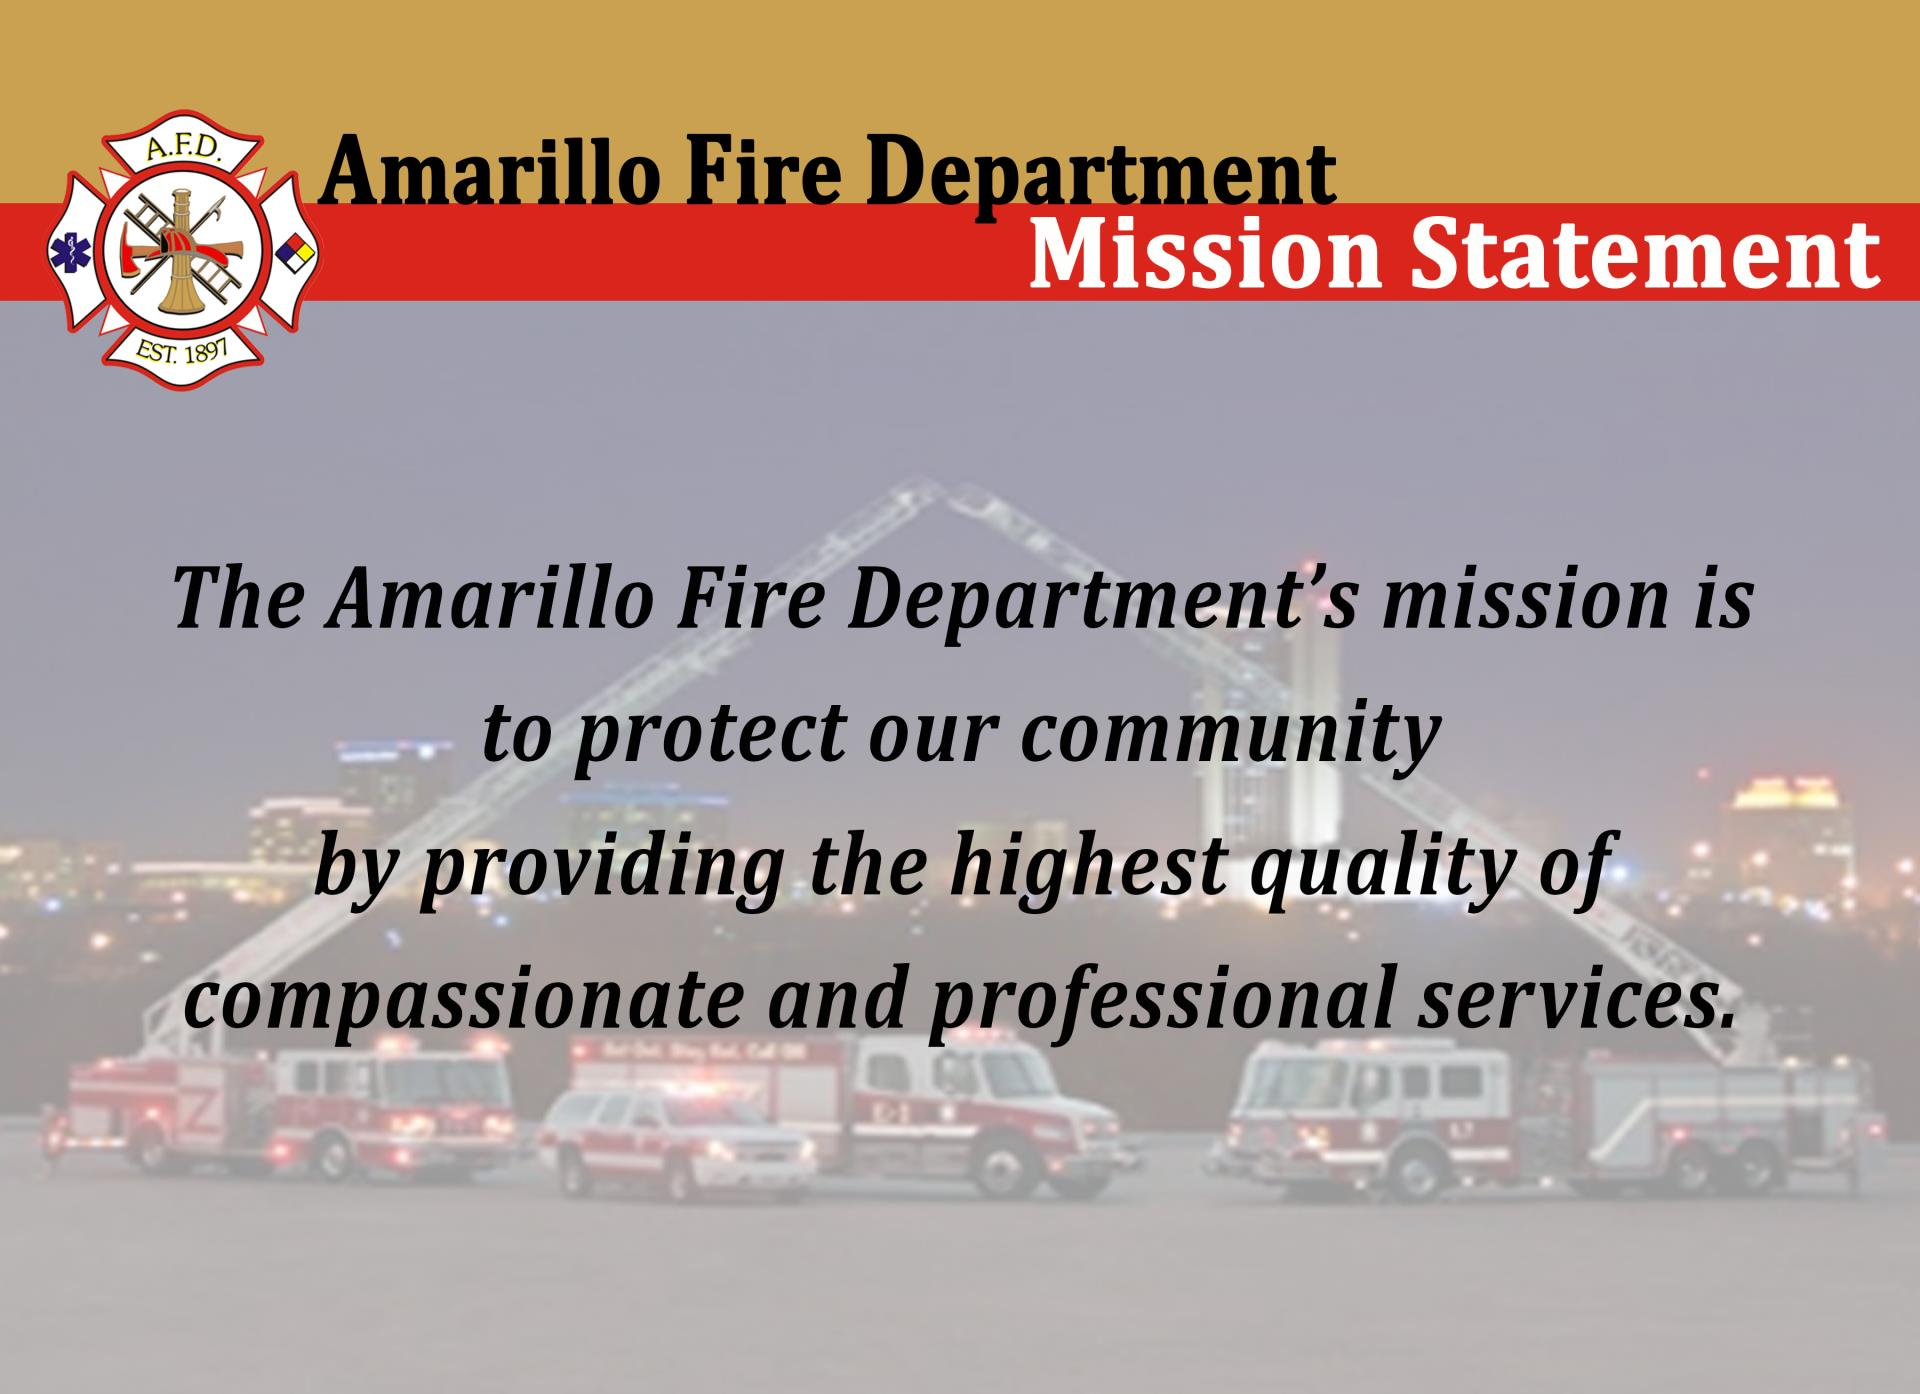 Amarillo fire department city of amarillo tx mission malvernweather